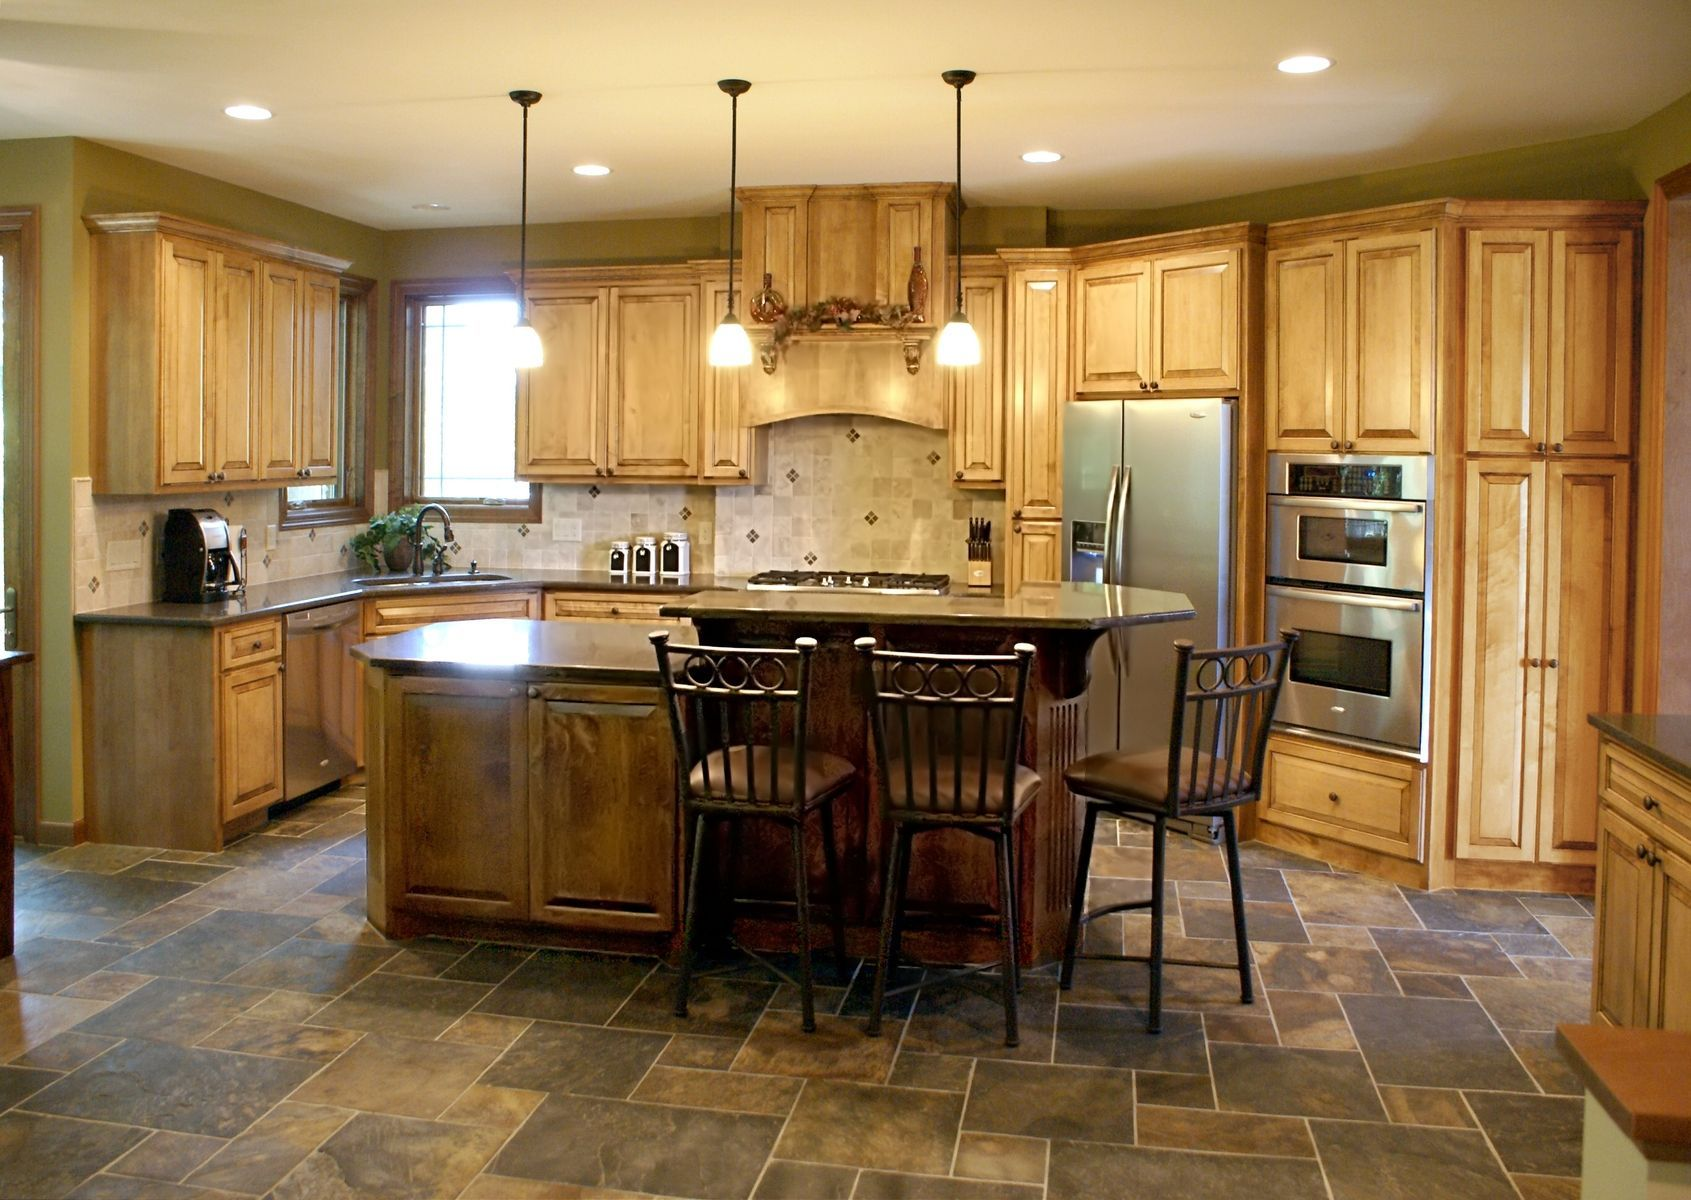 Custom Made Glazed Maple Kitchen Maple Kitchen Cabinets Maple Kitchen Kitchen Remodel